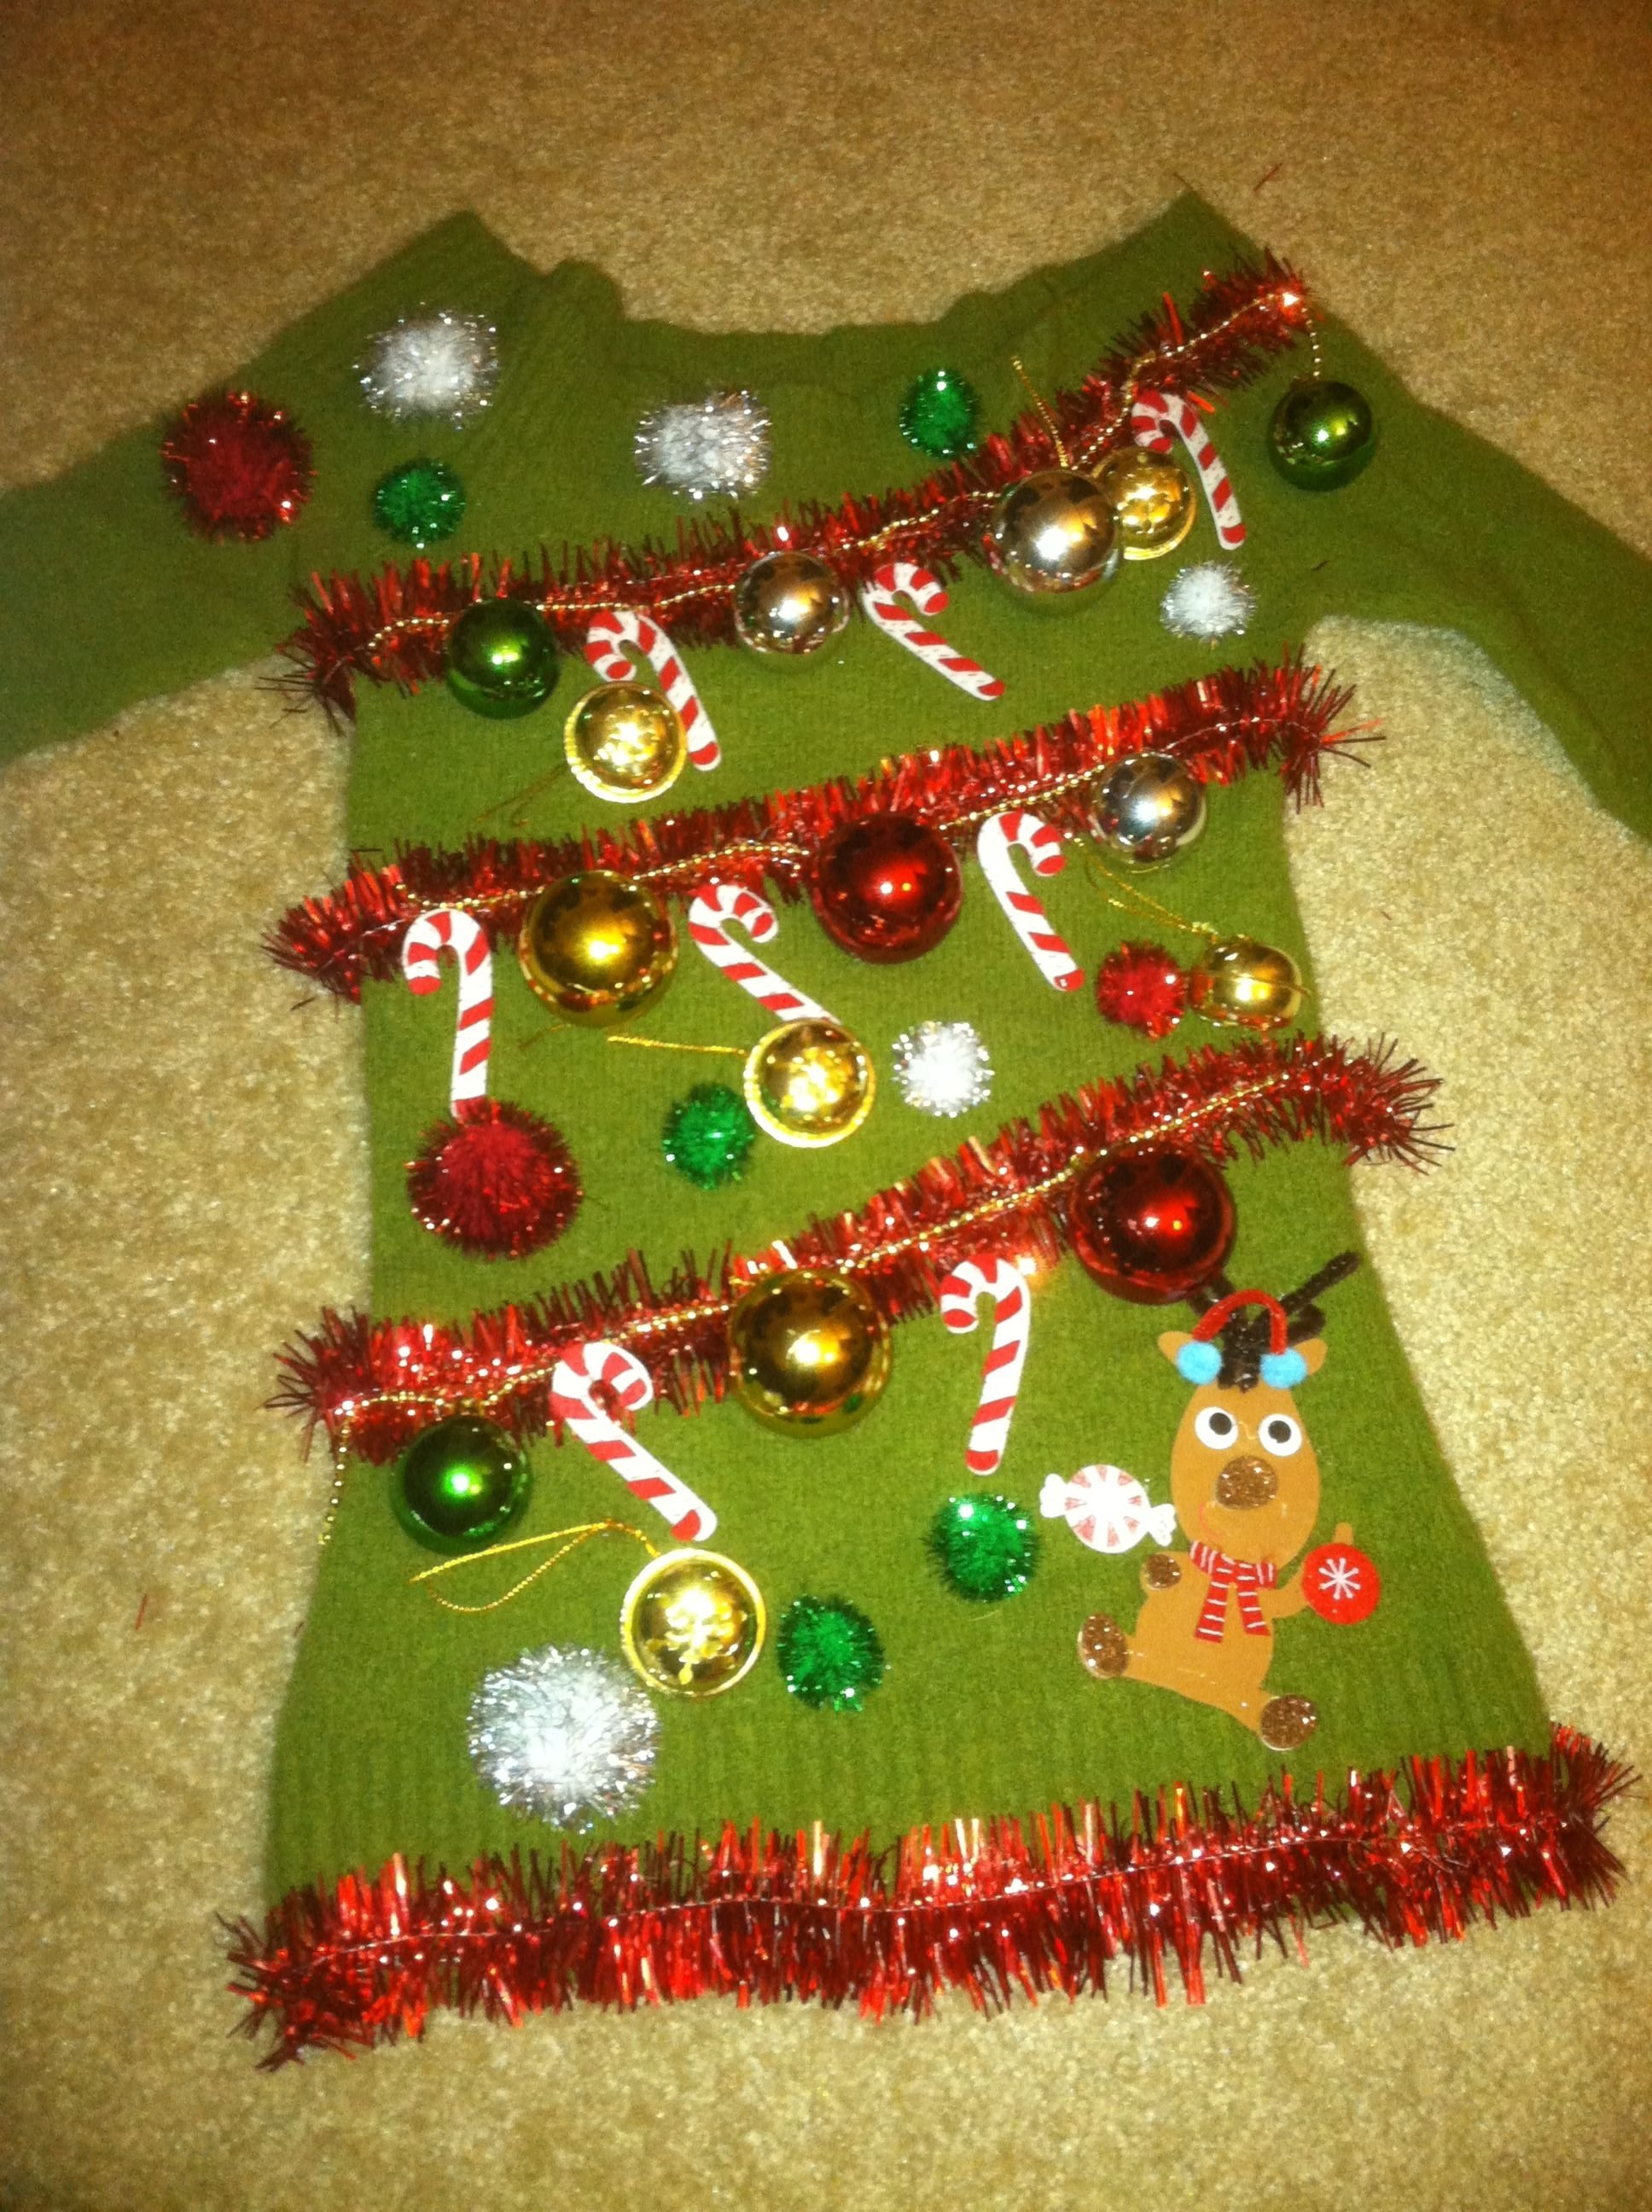 10 Fantastic Do It Yourself Ugly Christmas Sweater Ideas stylish christmas costume ideas for your holiday party ugliest 2020